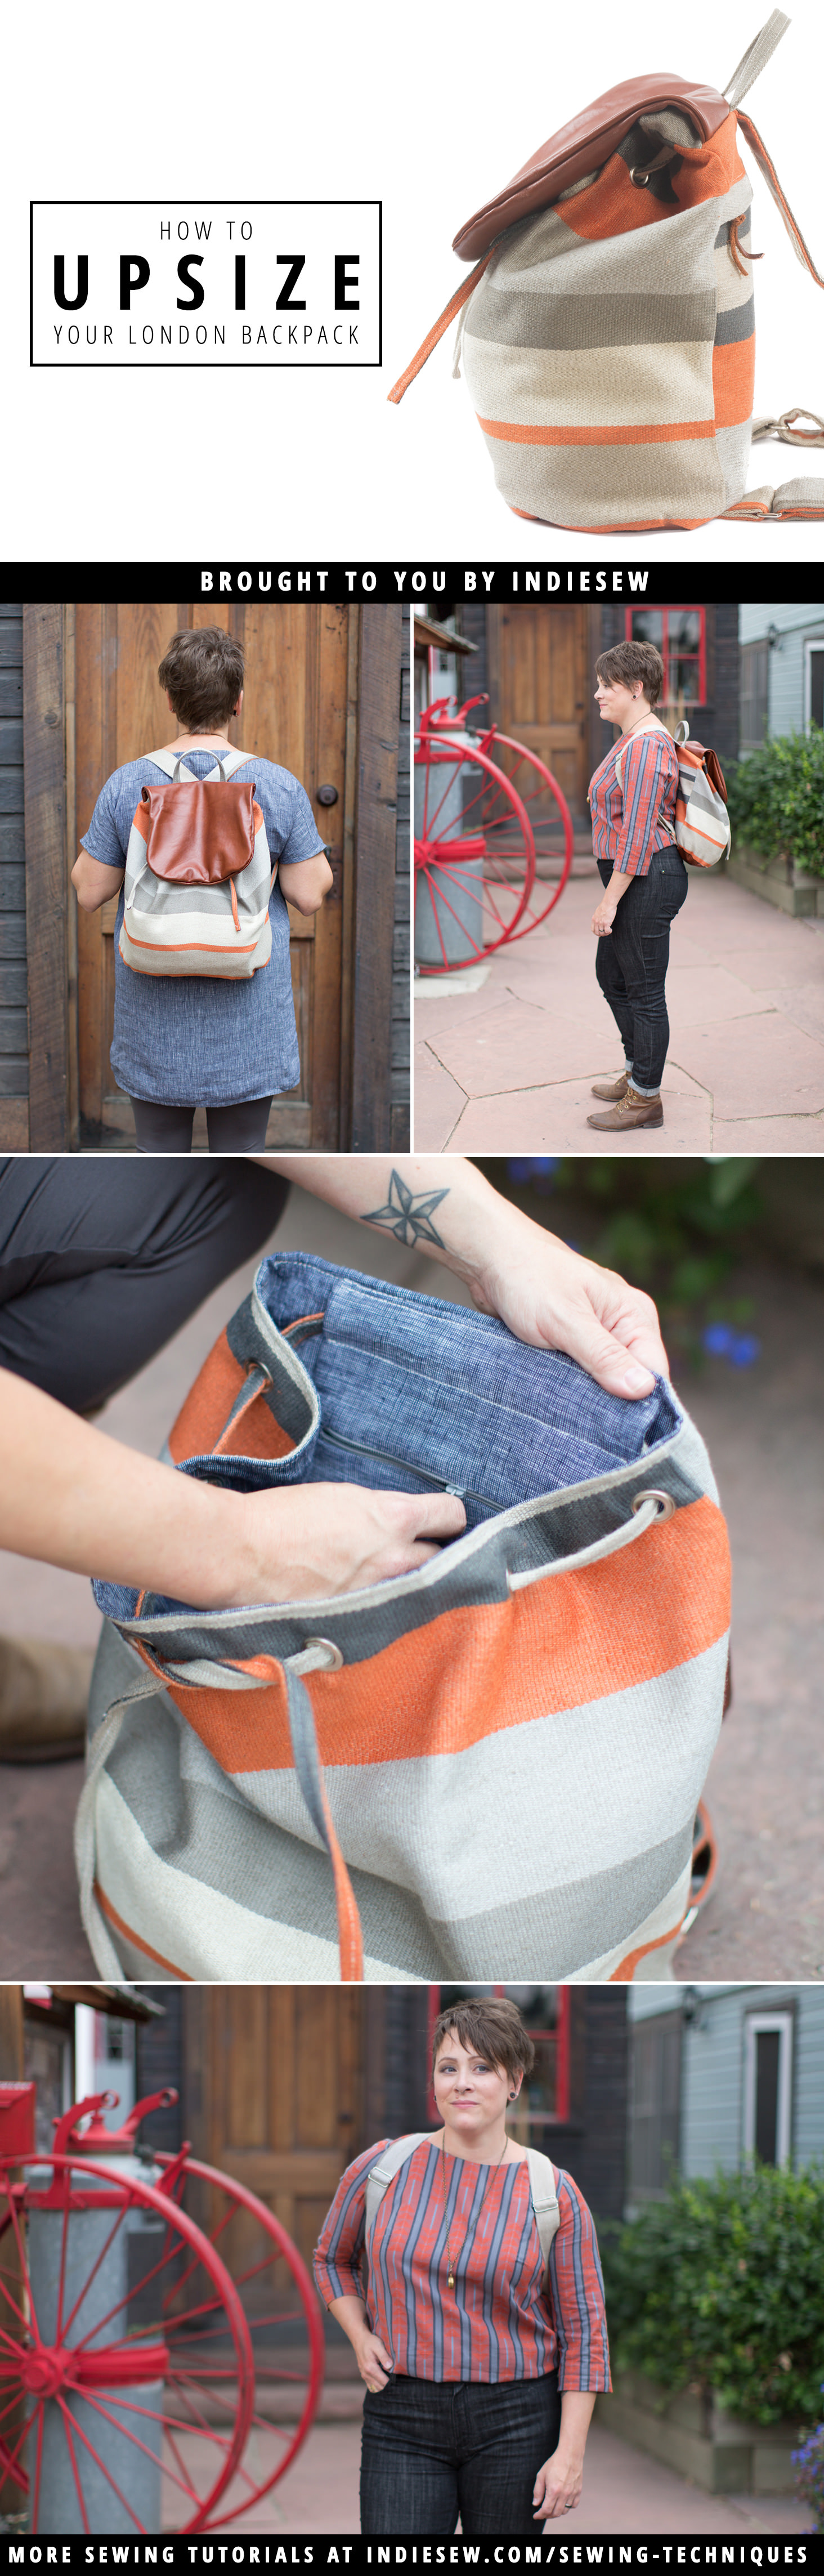 Find out how to upsize your London Backpack for a great accessory for those on-the-go! | Indiesew.com